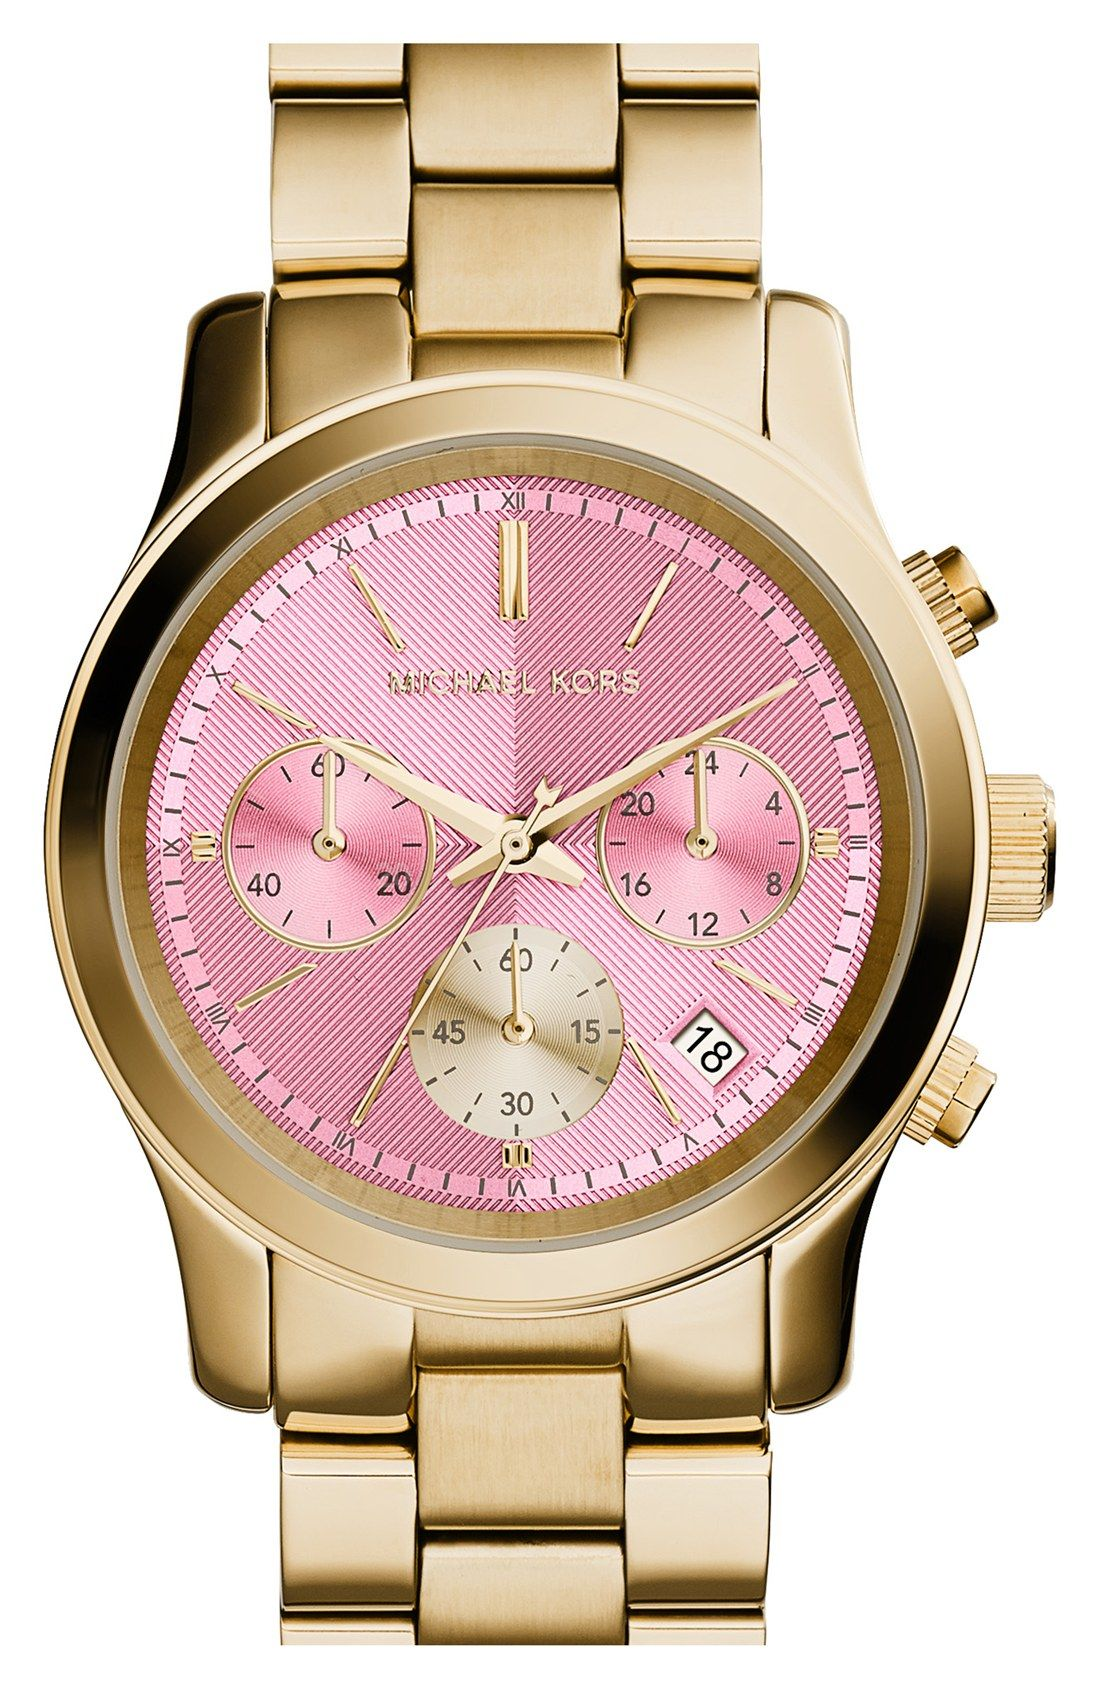 250082a413de Crushing on this stylish pink and gold Michael Kors watch.